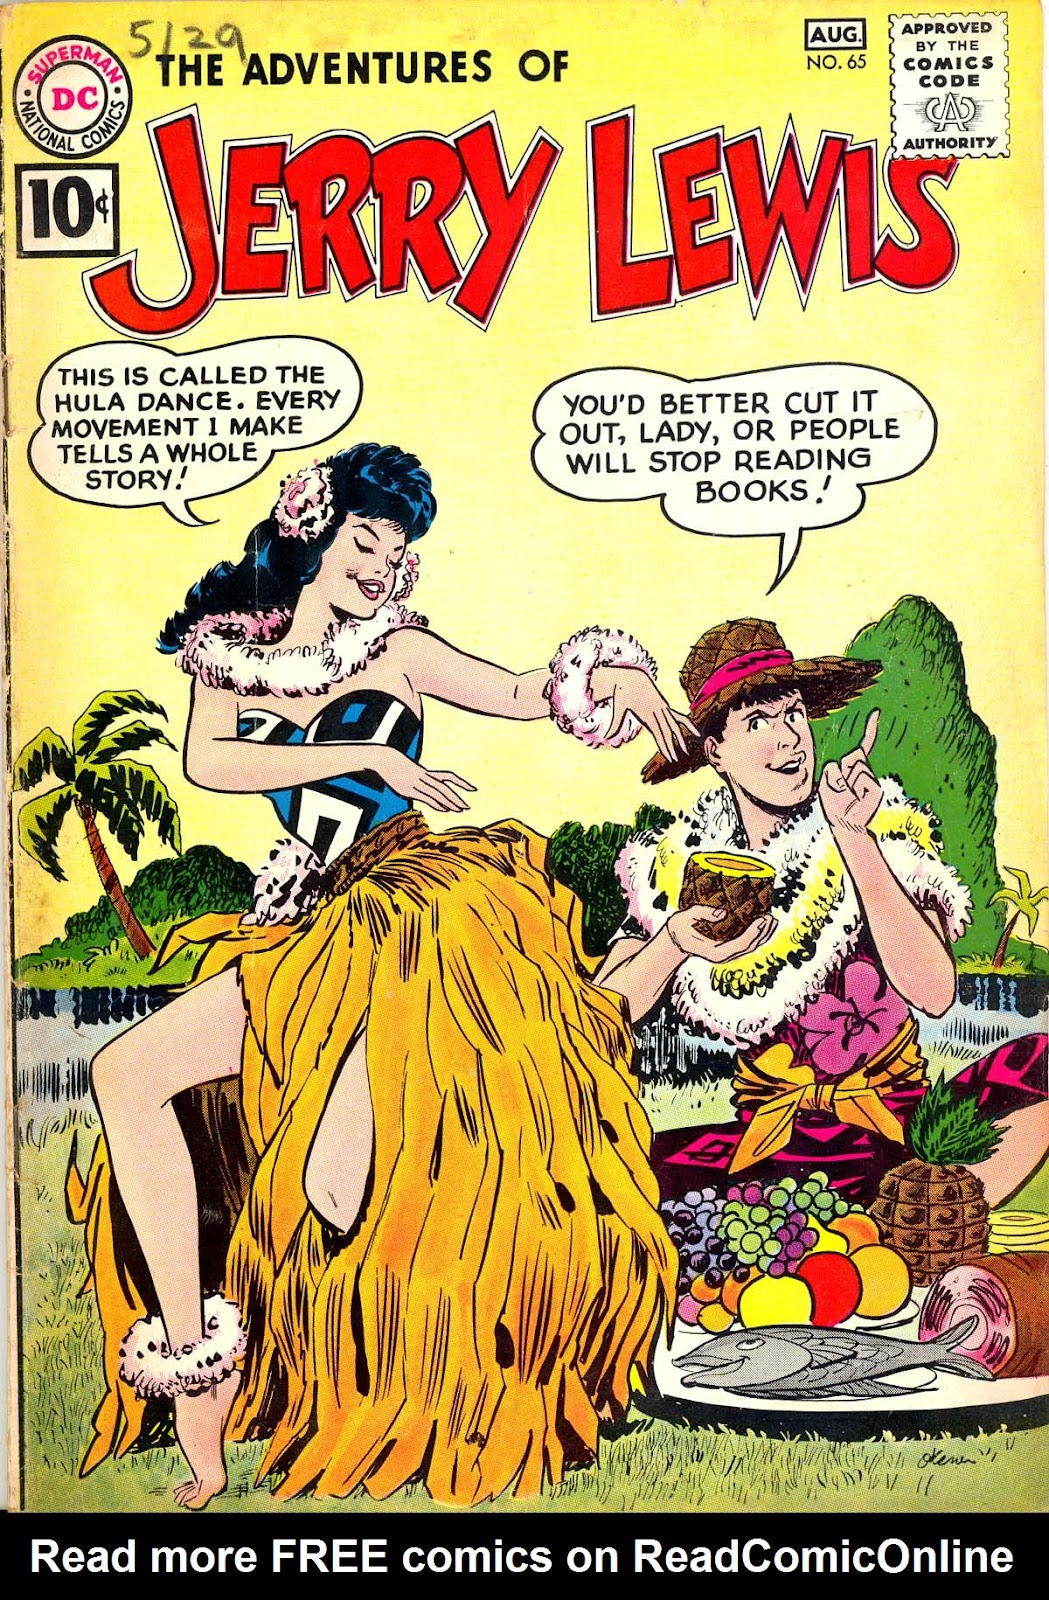 The Adventures of Jerry Lewis 65 Page 1